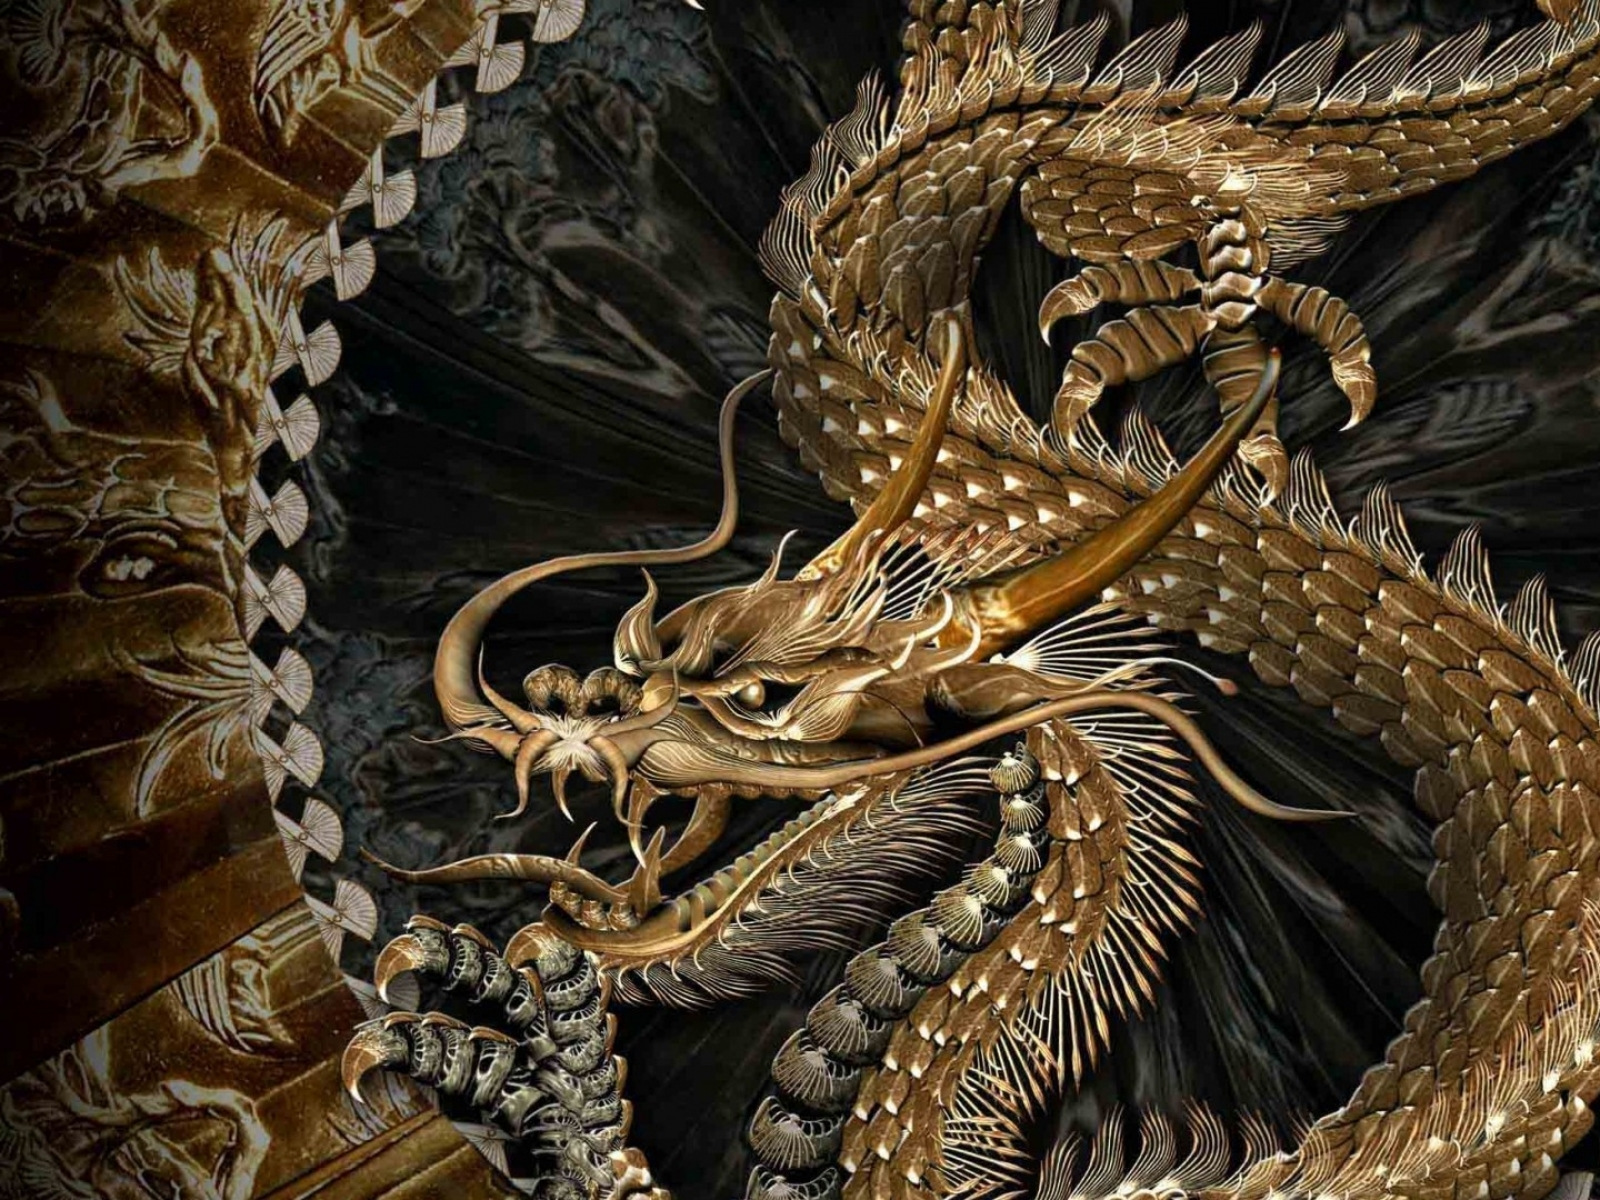 Top 50 hd dragon wallpapers images backgrounds desktop wallpapers high quality youme and - Dragon wallpaper 3d ...